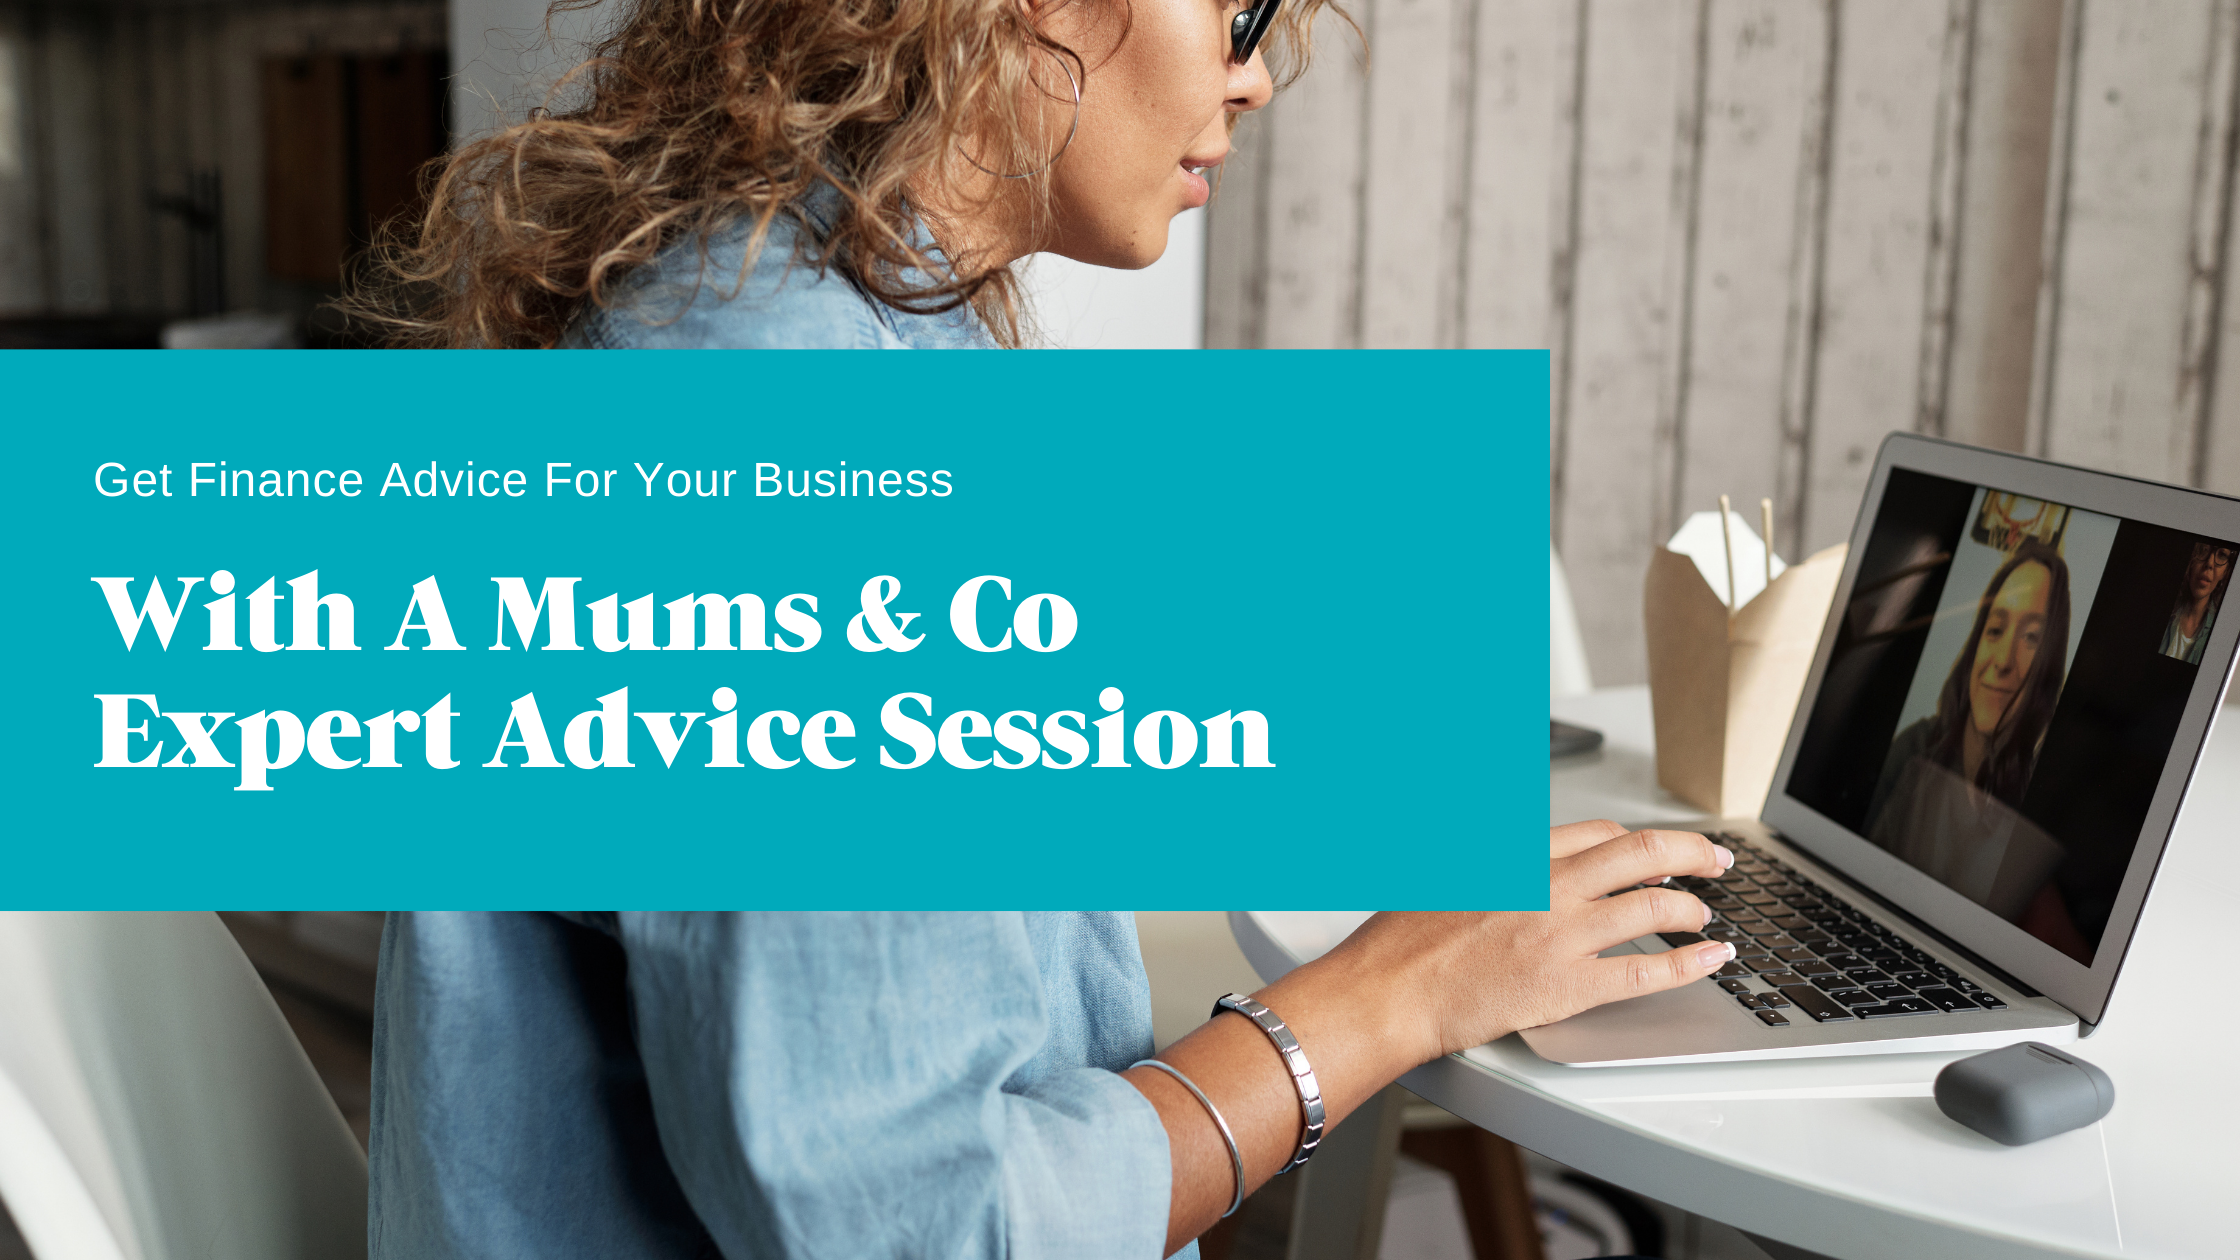 Get Expert Advice For Your Business